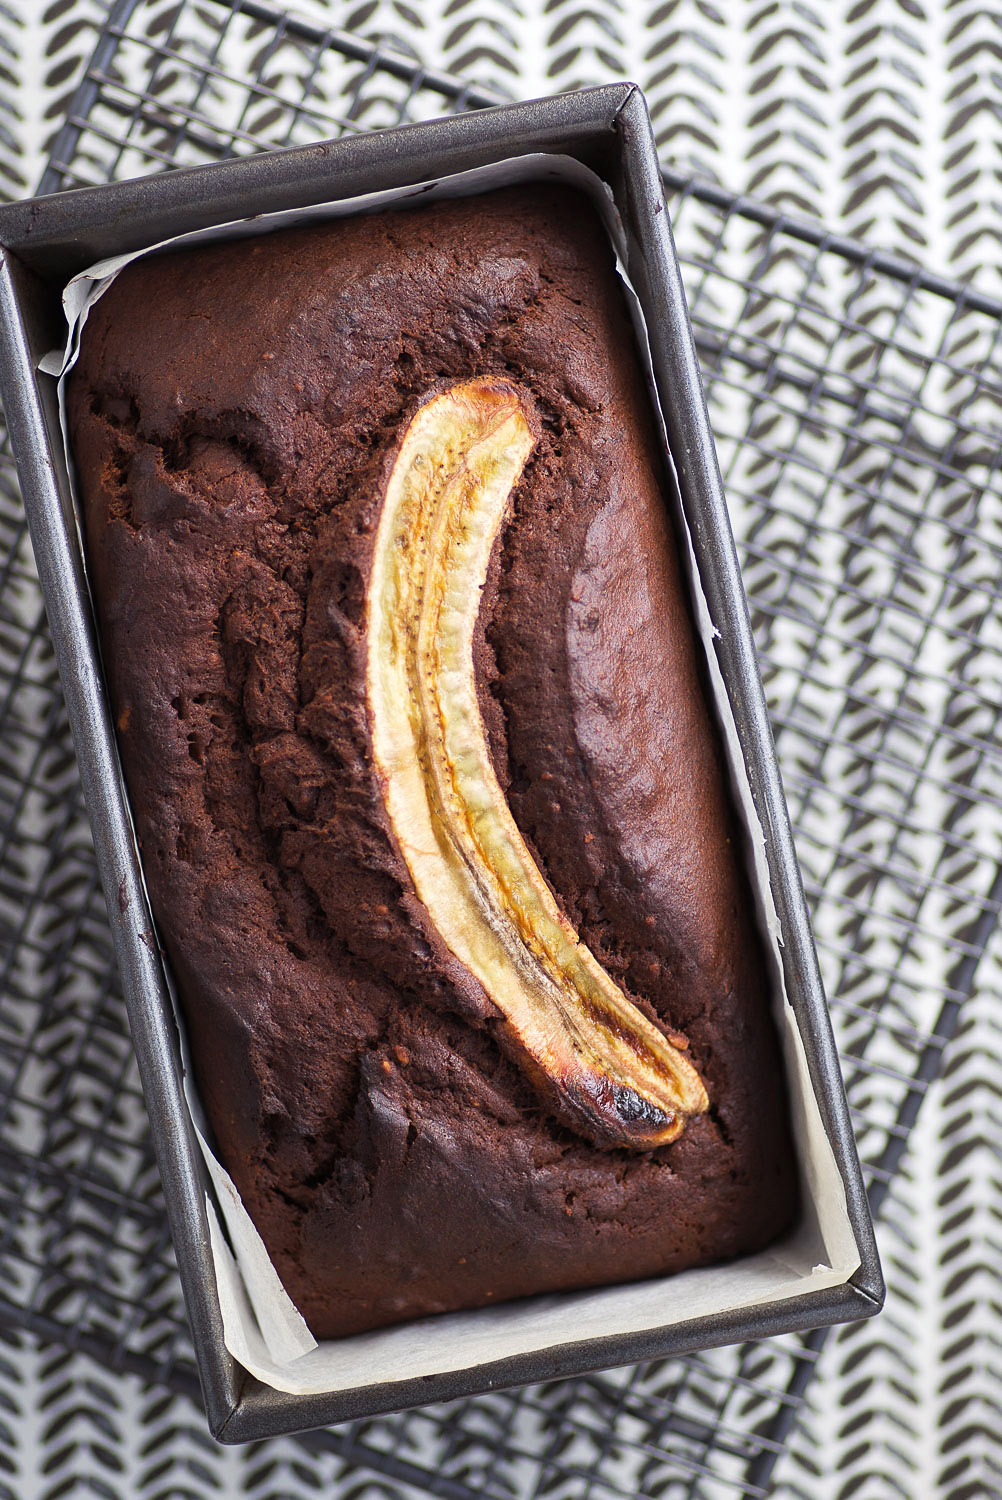 Chocolate Peanut Butter Banana Bread recipe | Photography Mondomulia